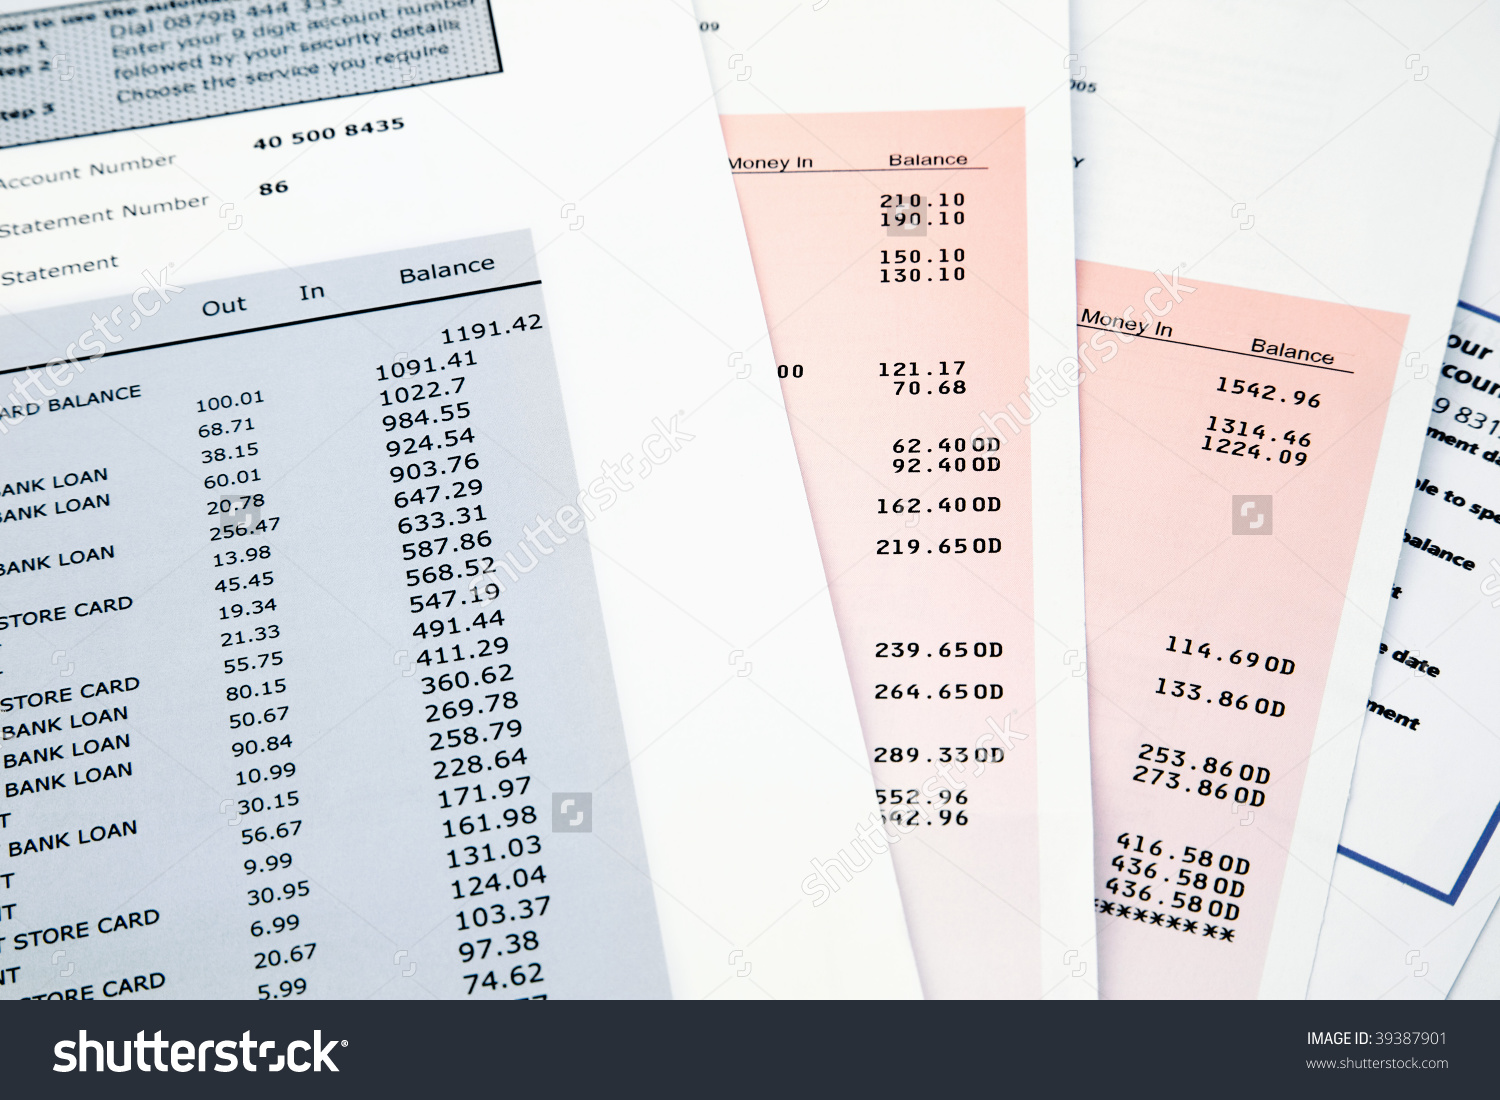 Pile Bank Statement Credit Card Statements Stock Photo 39387901.